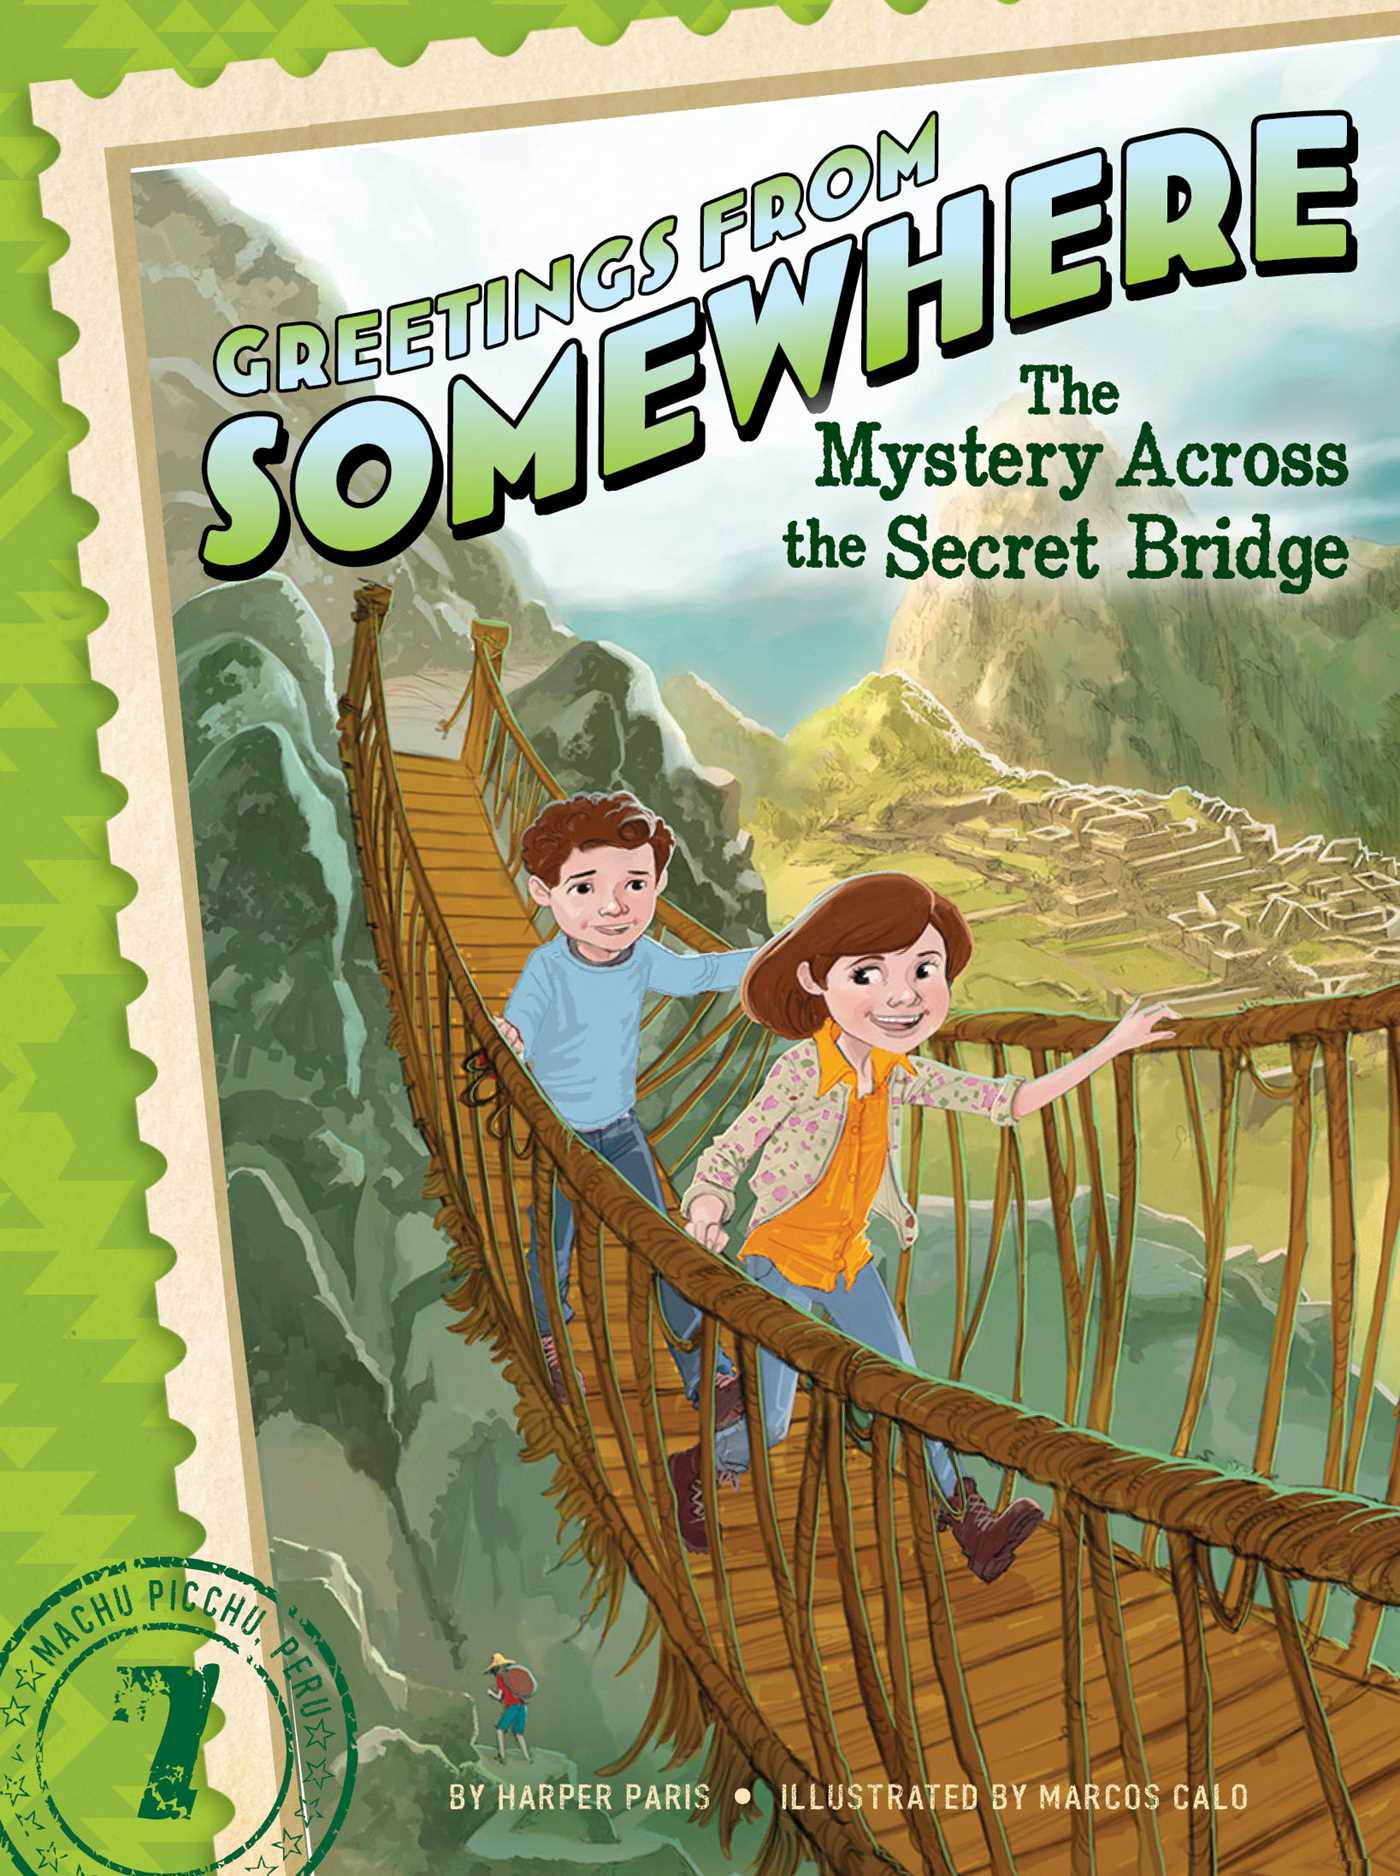 The-mystery-across-the-secret-bridge-9781481423670_hr